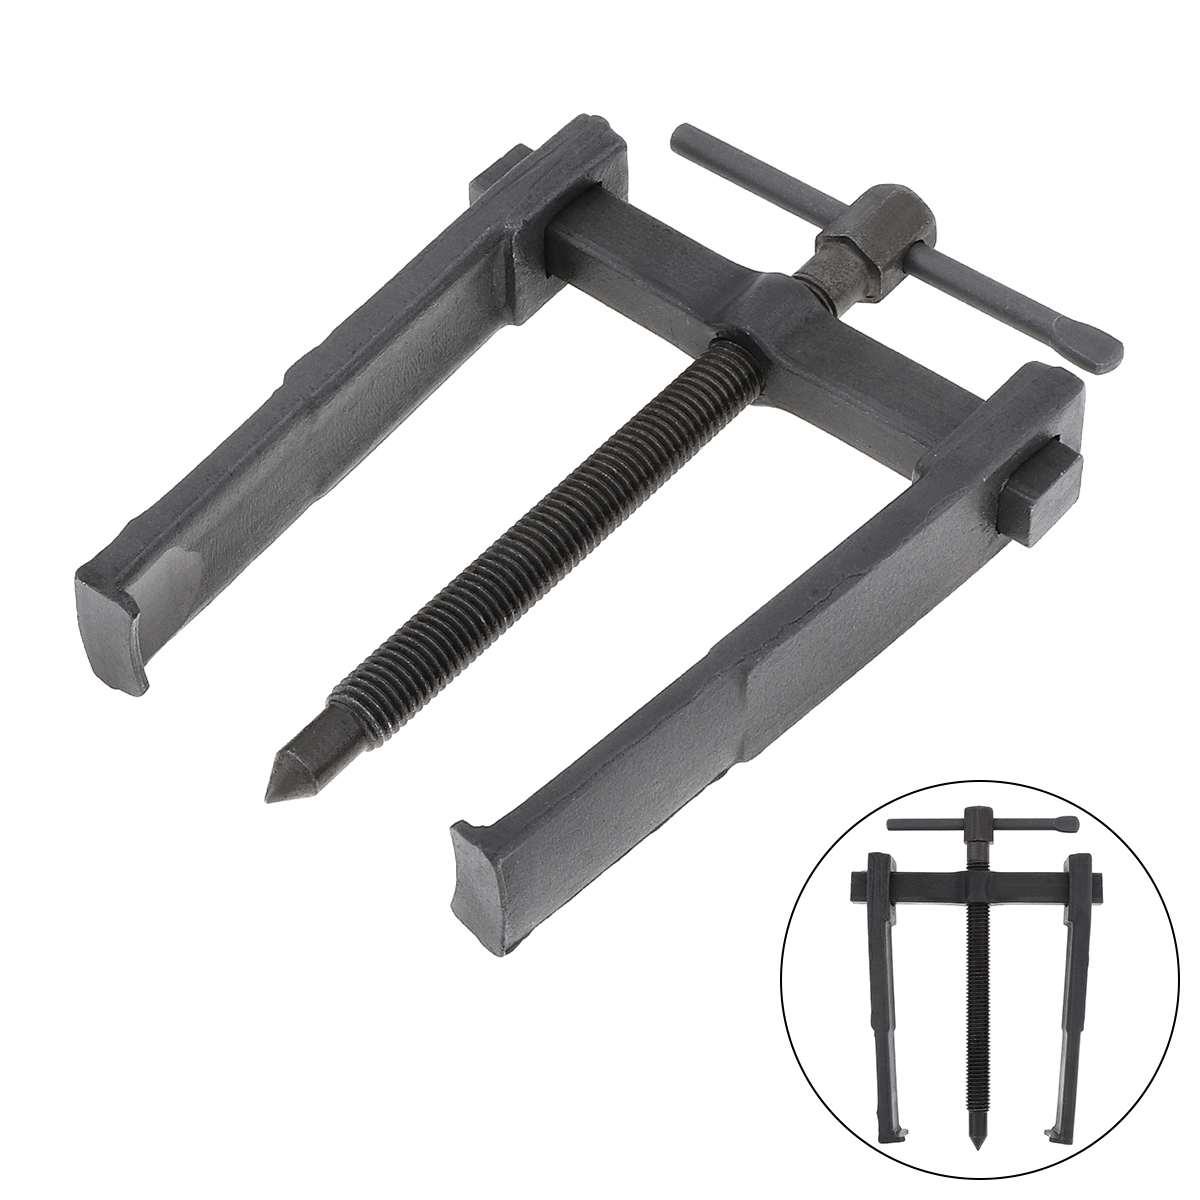 130mm High-carbon Steel Two-claw Puller Separate Lifting Device Pull Strengthen Bearing for Auto <font><b>Mechanic</b></font> Car Repair Hand <font><b>Tools</b></font> image